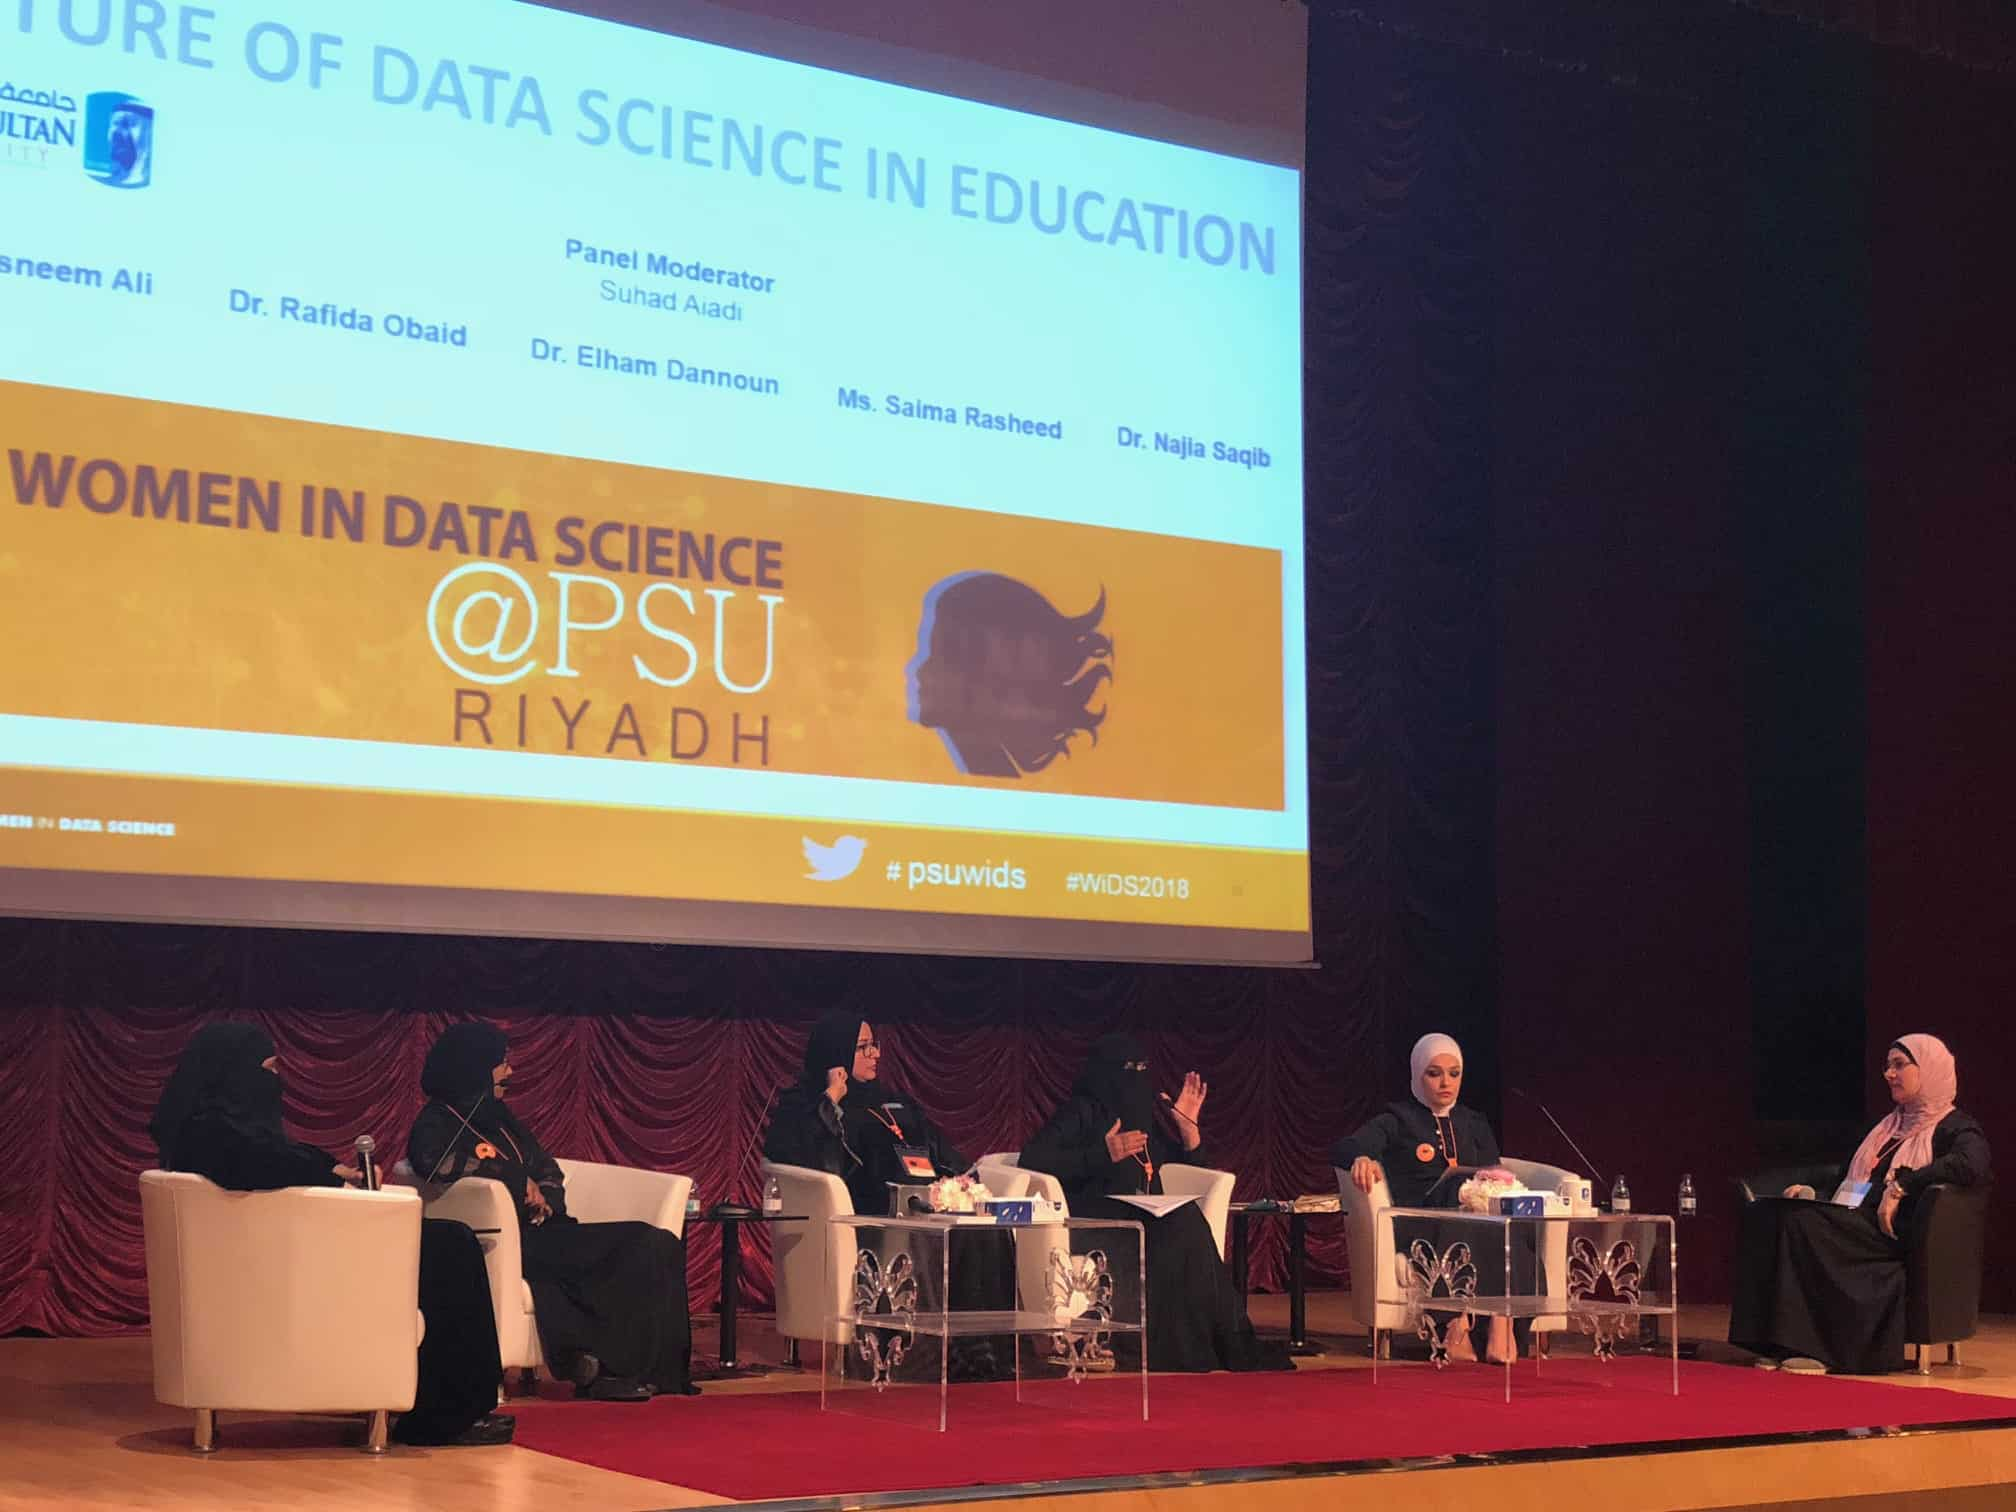 Women in Data Science Forum at Prince Sultan University in Collaboration with Stanford University